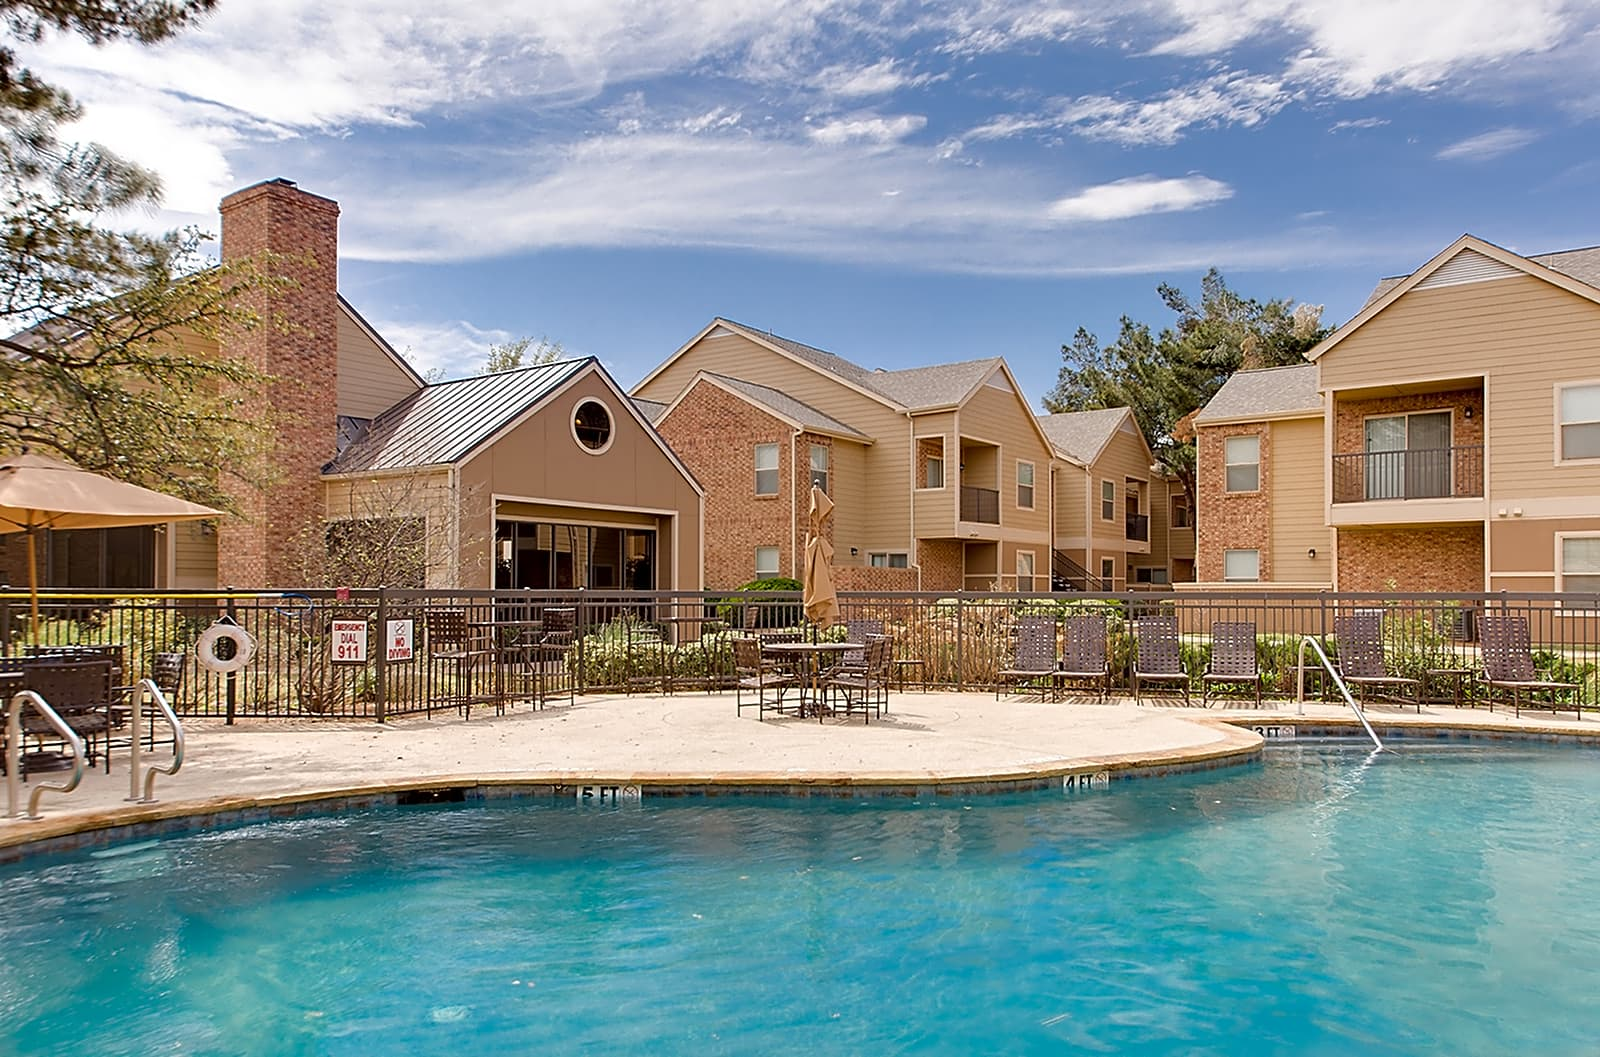 Apartments Near UTPB Renew Midland for The University of Texas of the Permian Basin Students in Odessa, TX